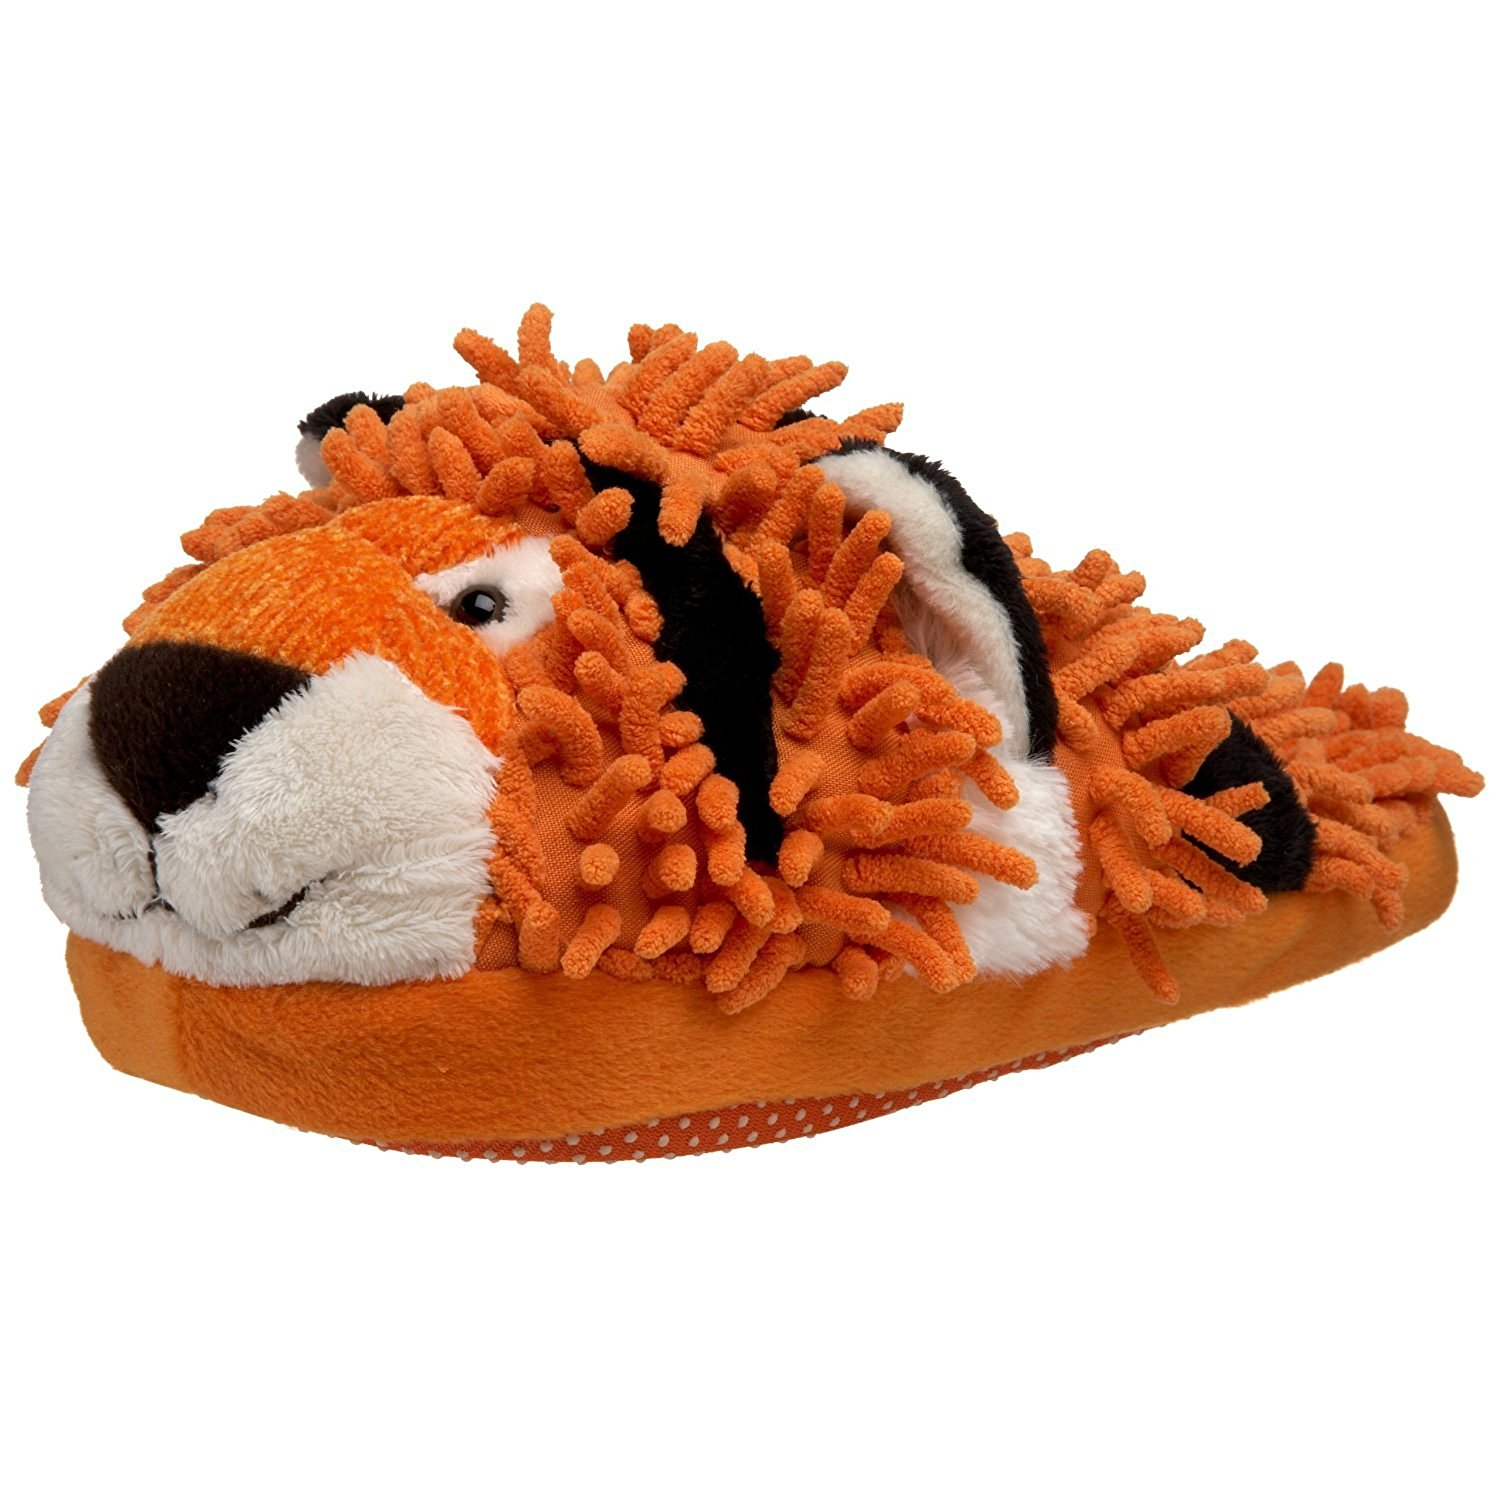 3f8dcbd9f5d Get Quotations · Adult Size Aroma Home Fuzzy Friends Tiger Slippers